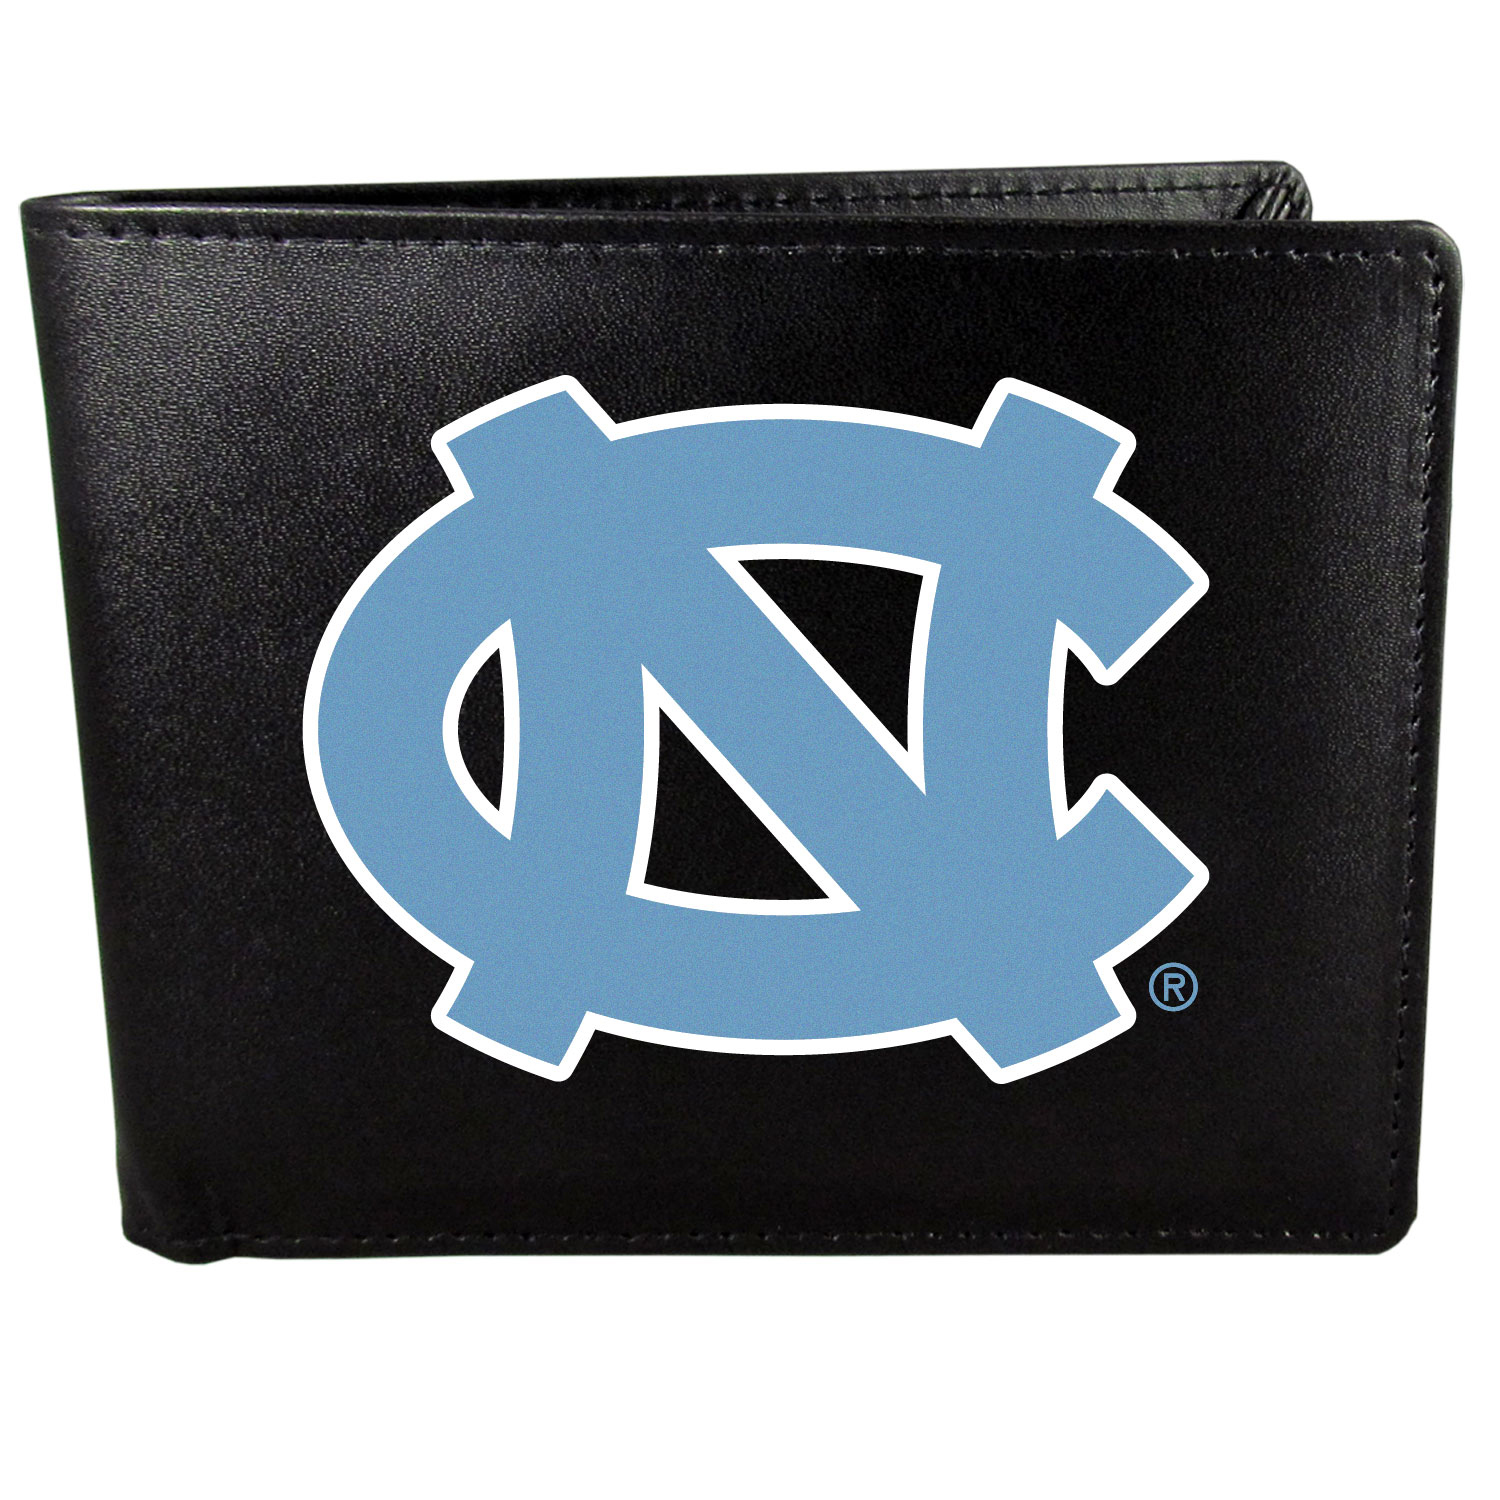 N. Carolina Tar Heels Leather Bi-fold Wallet, Large Logo - Our classic fine leather bi-fold wallet is meticulously crafted with genuine leather that will age beautifully so you will have a quality wallet for years to come. The wallet opens to a large, billfold pocket and numerous credit card slots and has a convenient windowed ID slot. The front of the wallet features an extra large N. Carolina Tar Heels printed logo.